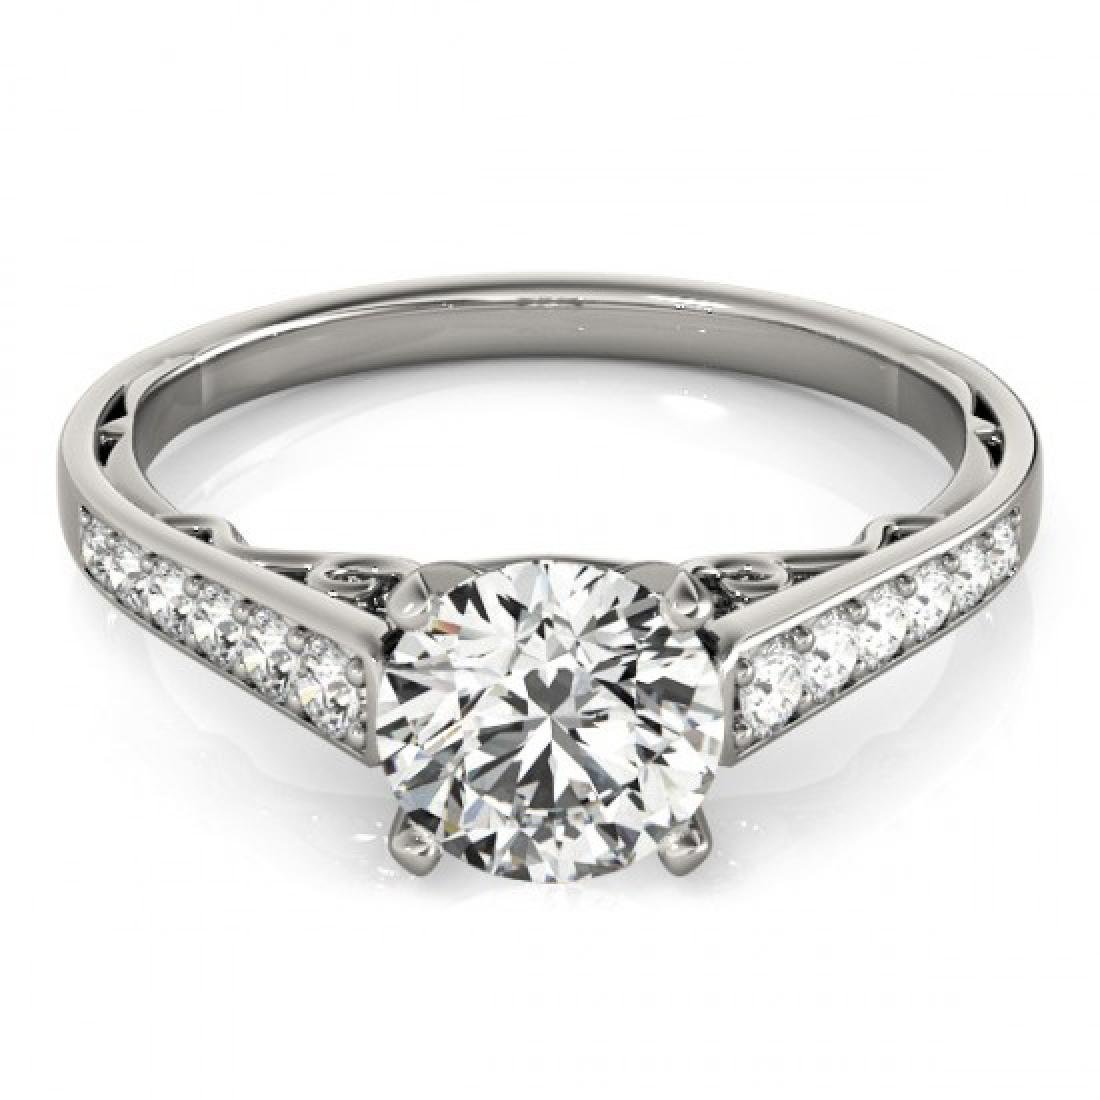 1.35 CTW Certified VS/SI Diamond Solitaire Ring 14K